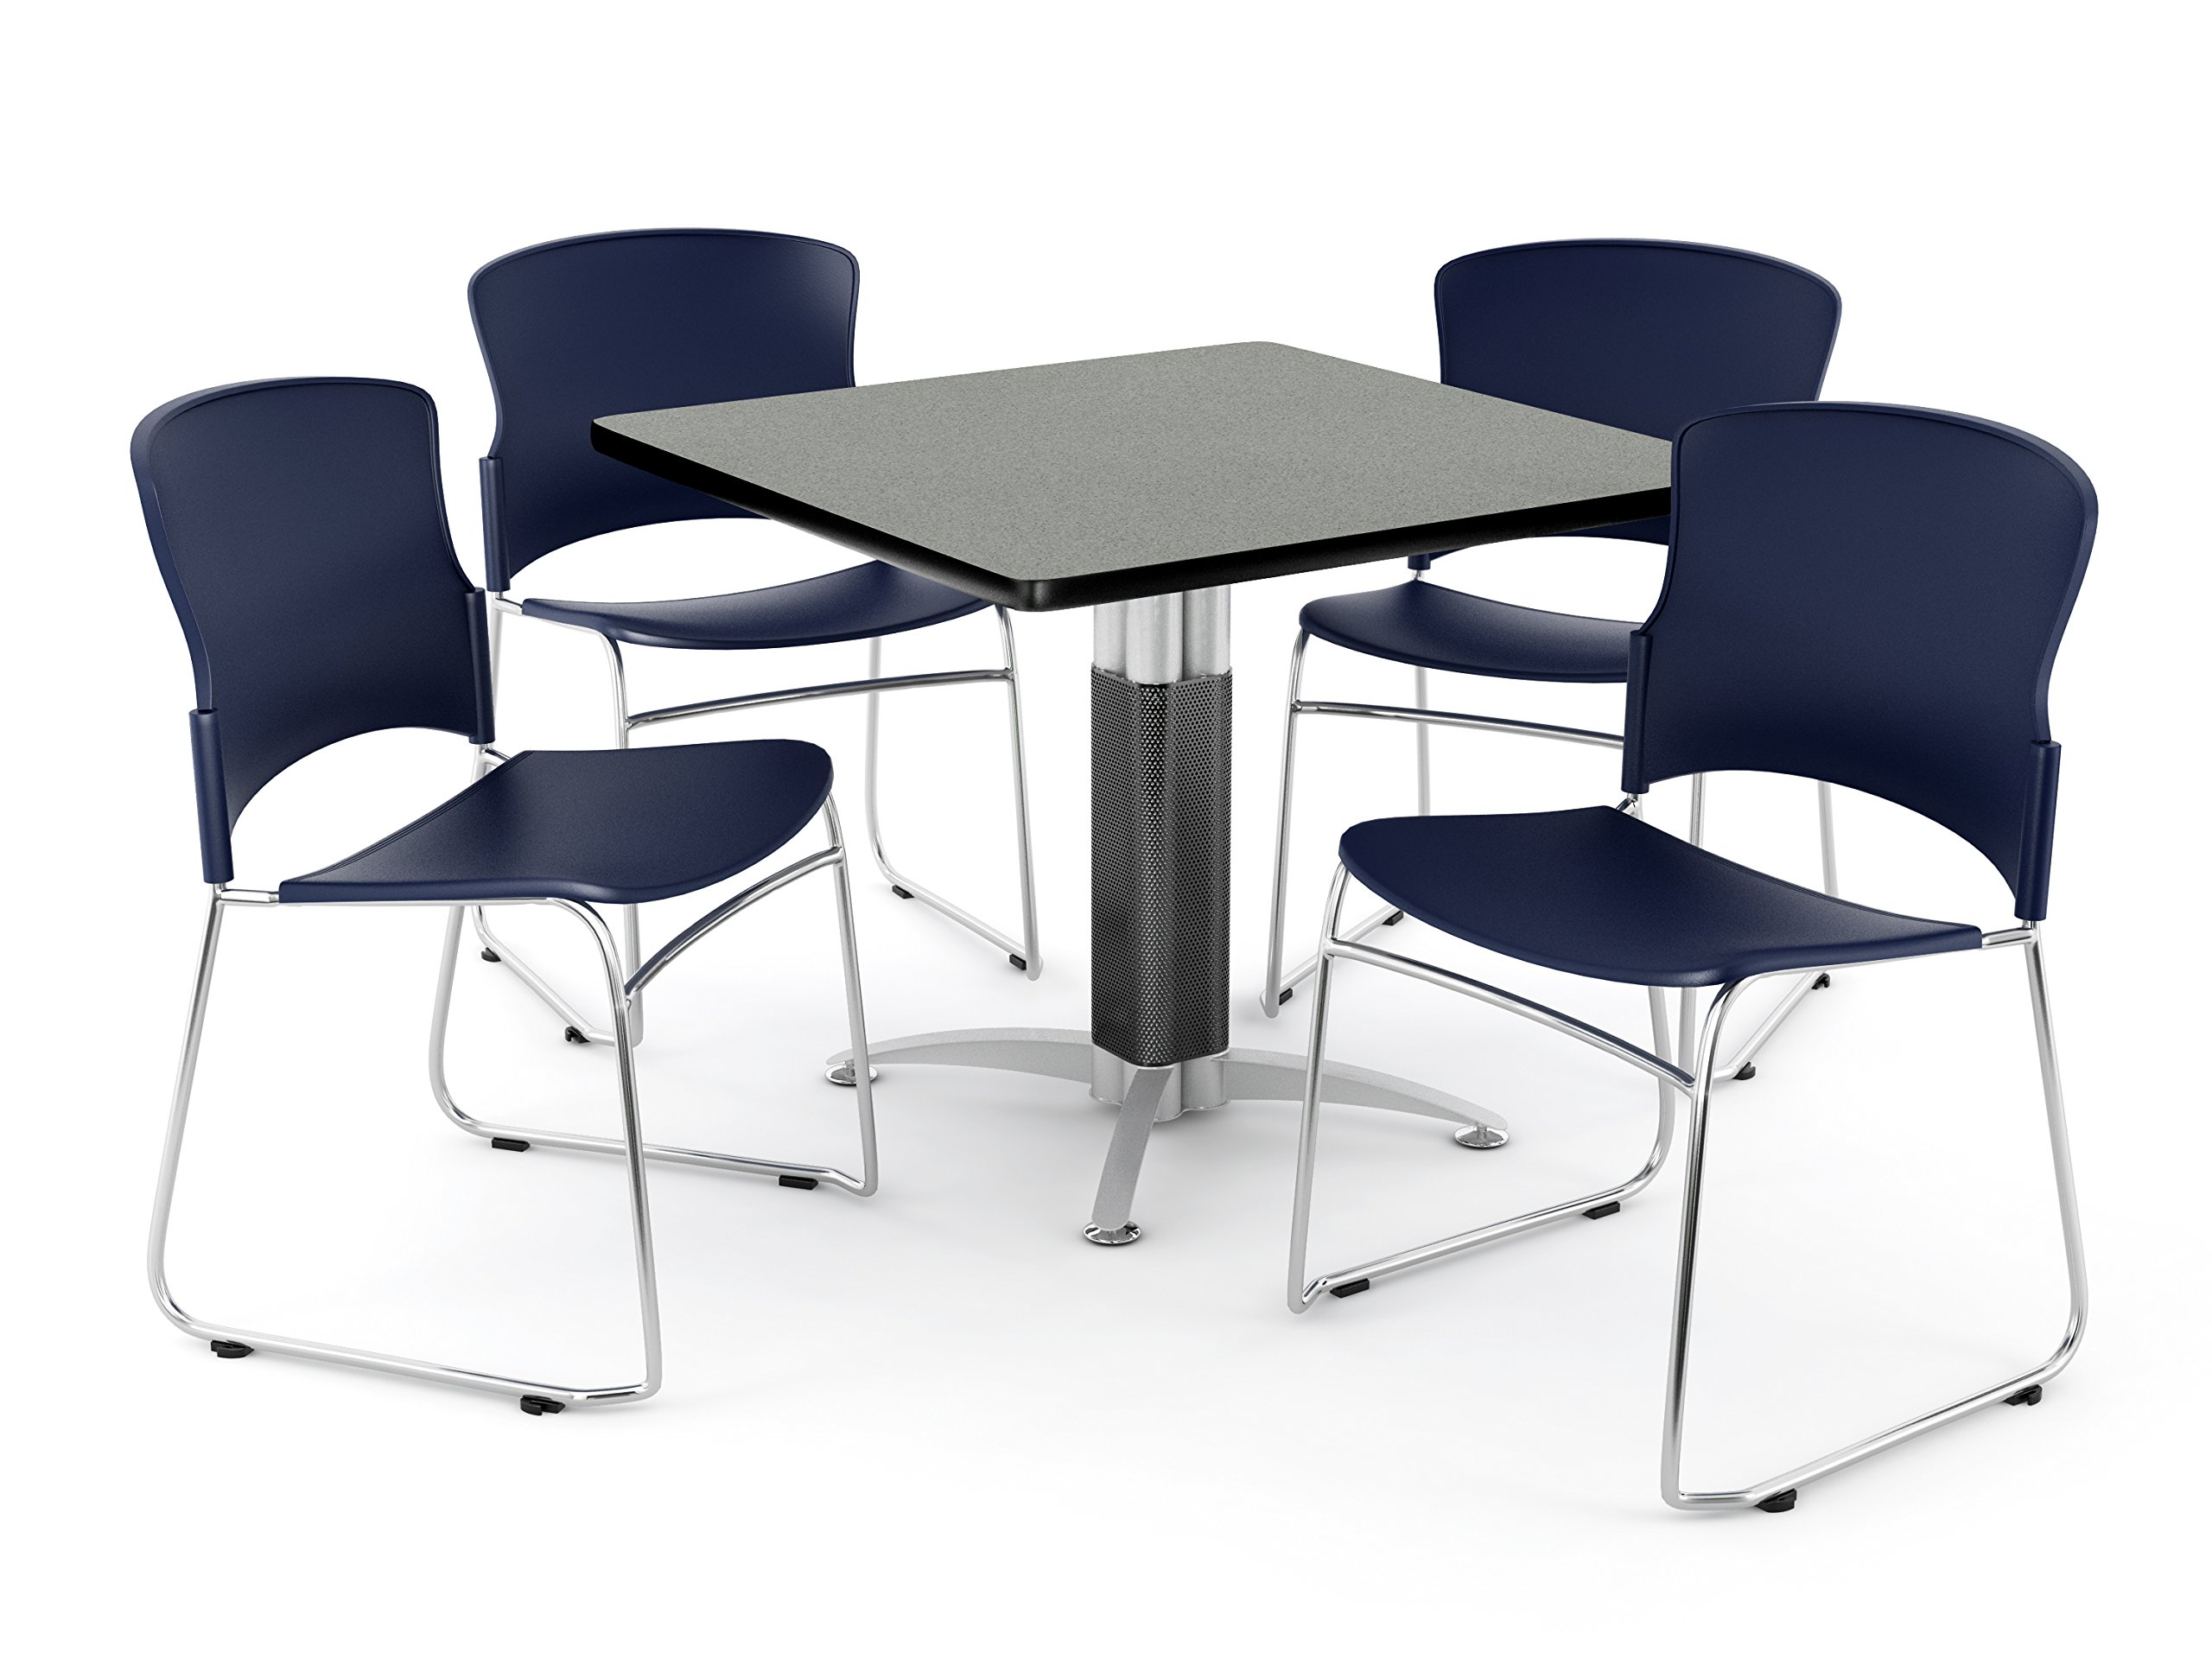 OFM Core Collection Breakroom Set, 36'' Square Metal Mesh Base Multi-Purpose Table in Gray Nebula, 4 Multi-use Plastic Stack Chairs in Navy (PKG-BRK-028-0008) by OFM